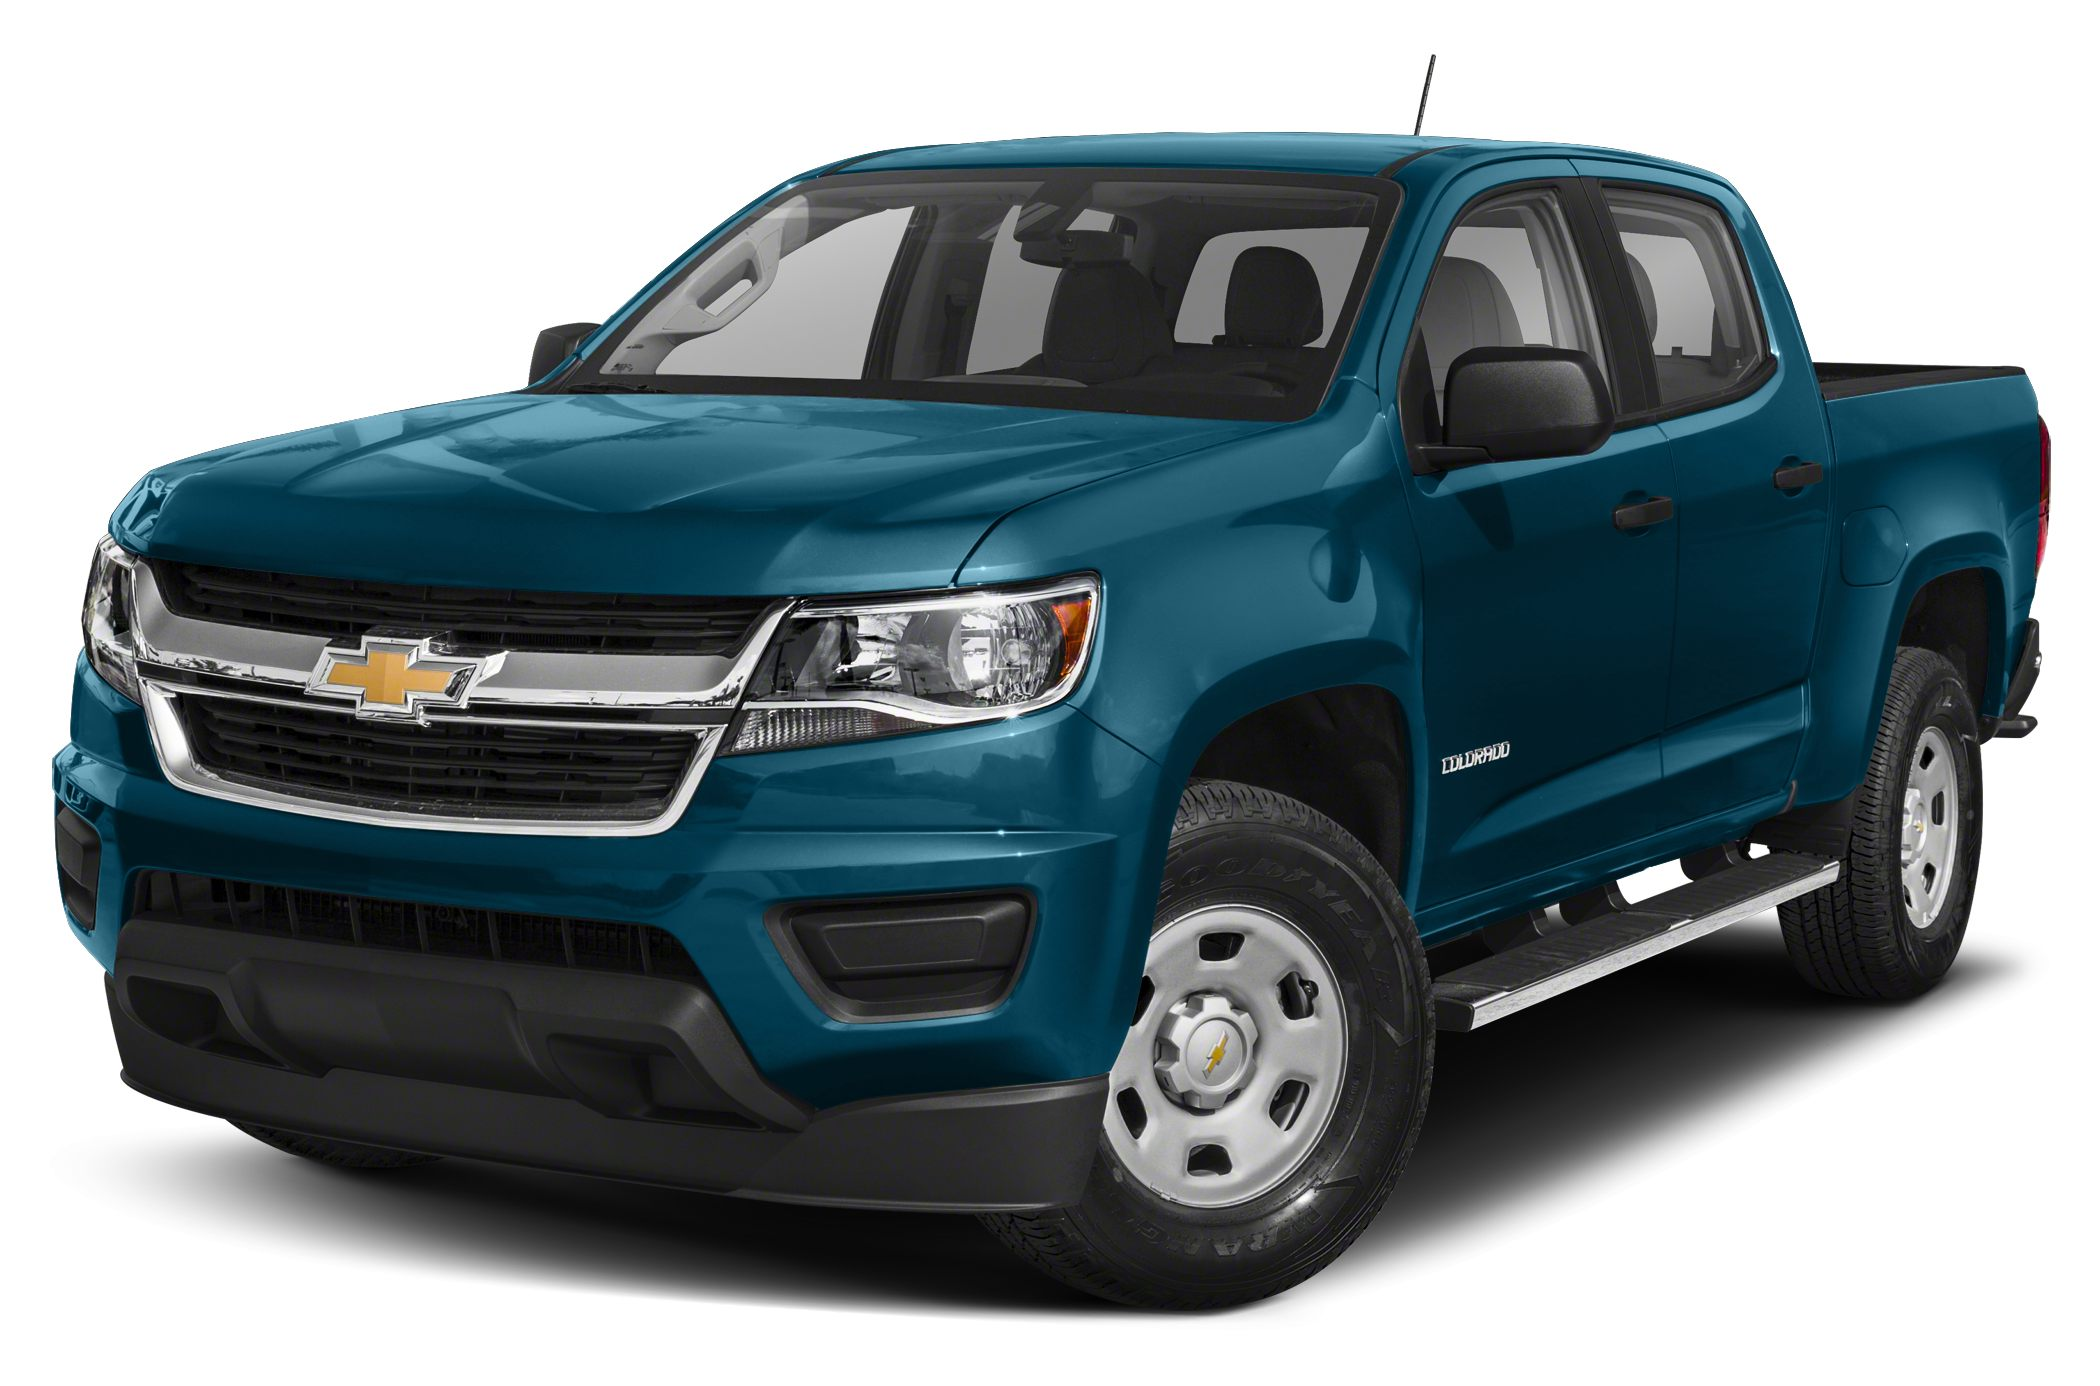 2020 Chevrolet Colorado Z71 4x4 Crew Cab 5 Ft Box 128 3 In Wb Pricing And Options